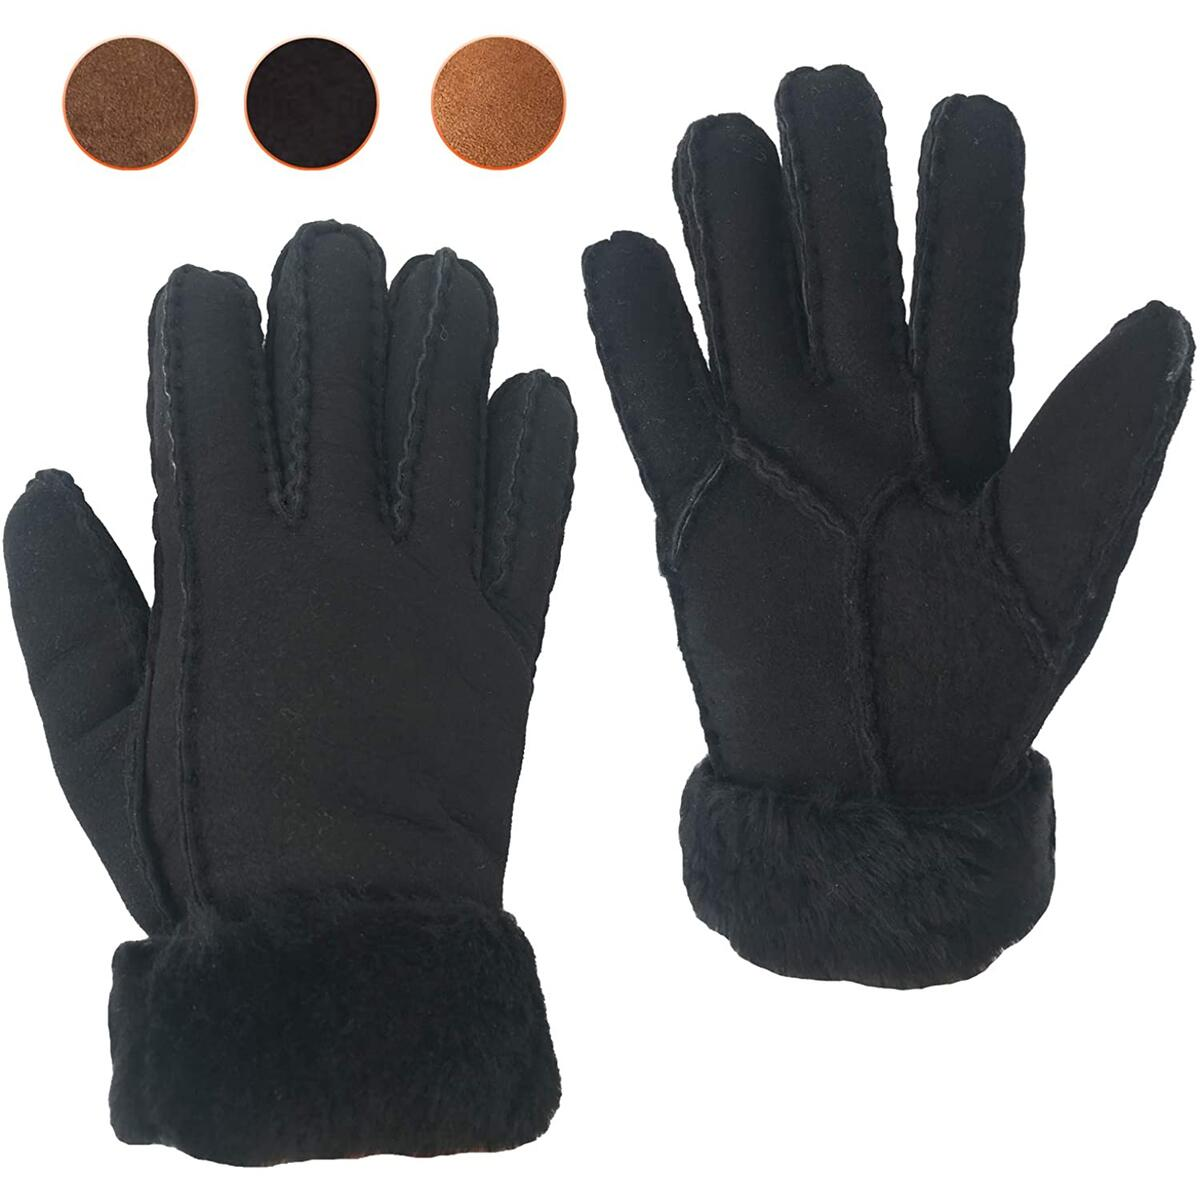 Genuine Shearling Sheepskin Fur Lined Leather Gloves | Winter Gloves for Men &Driving & Work Glove